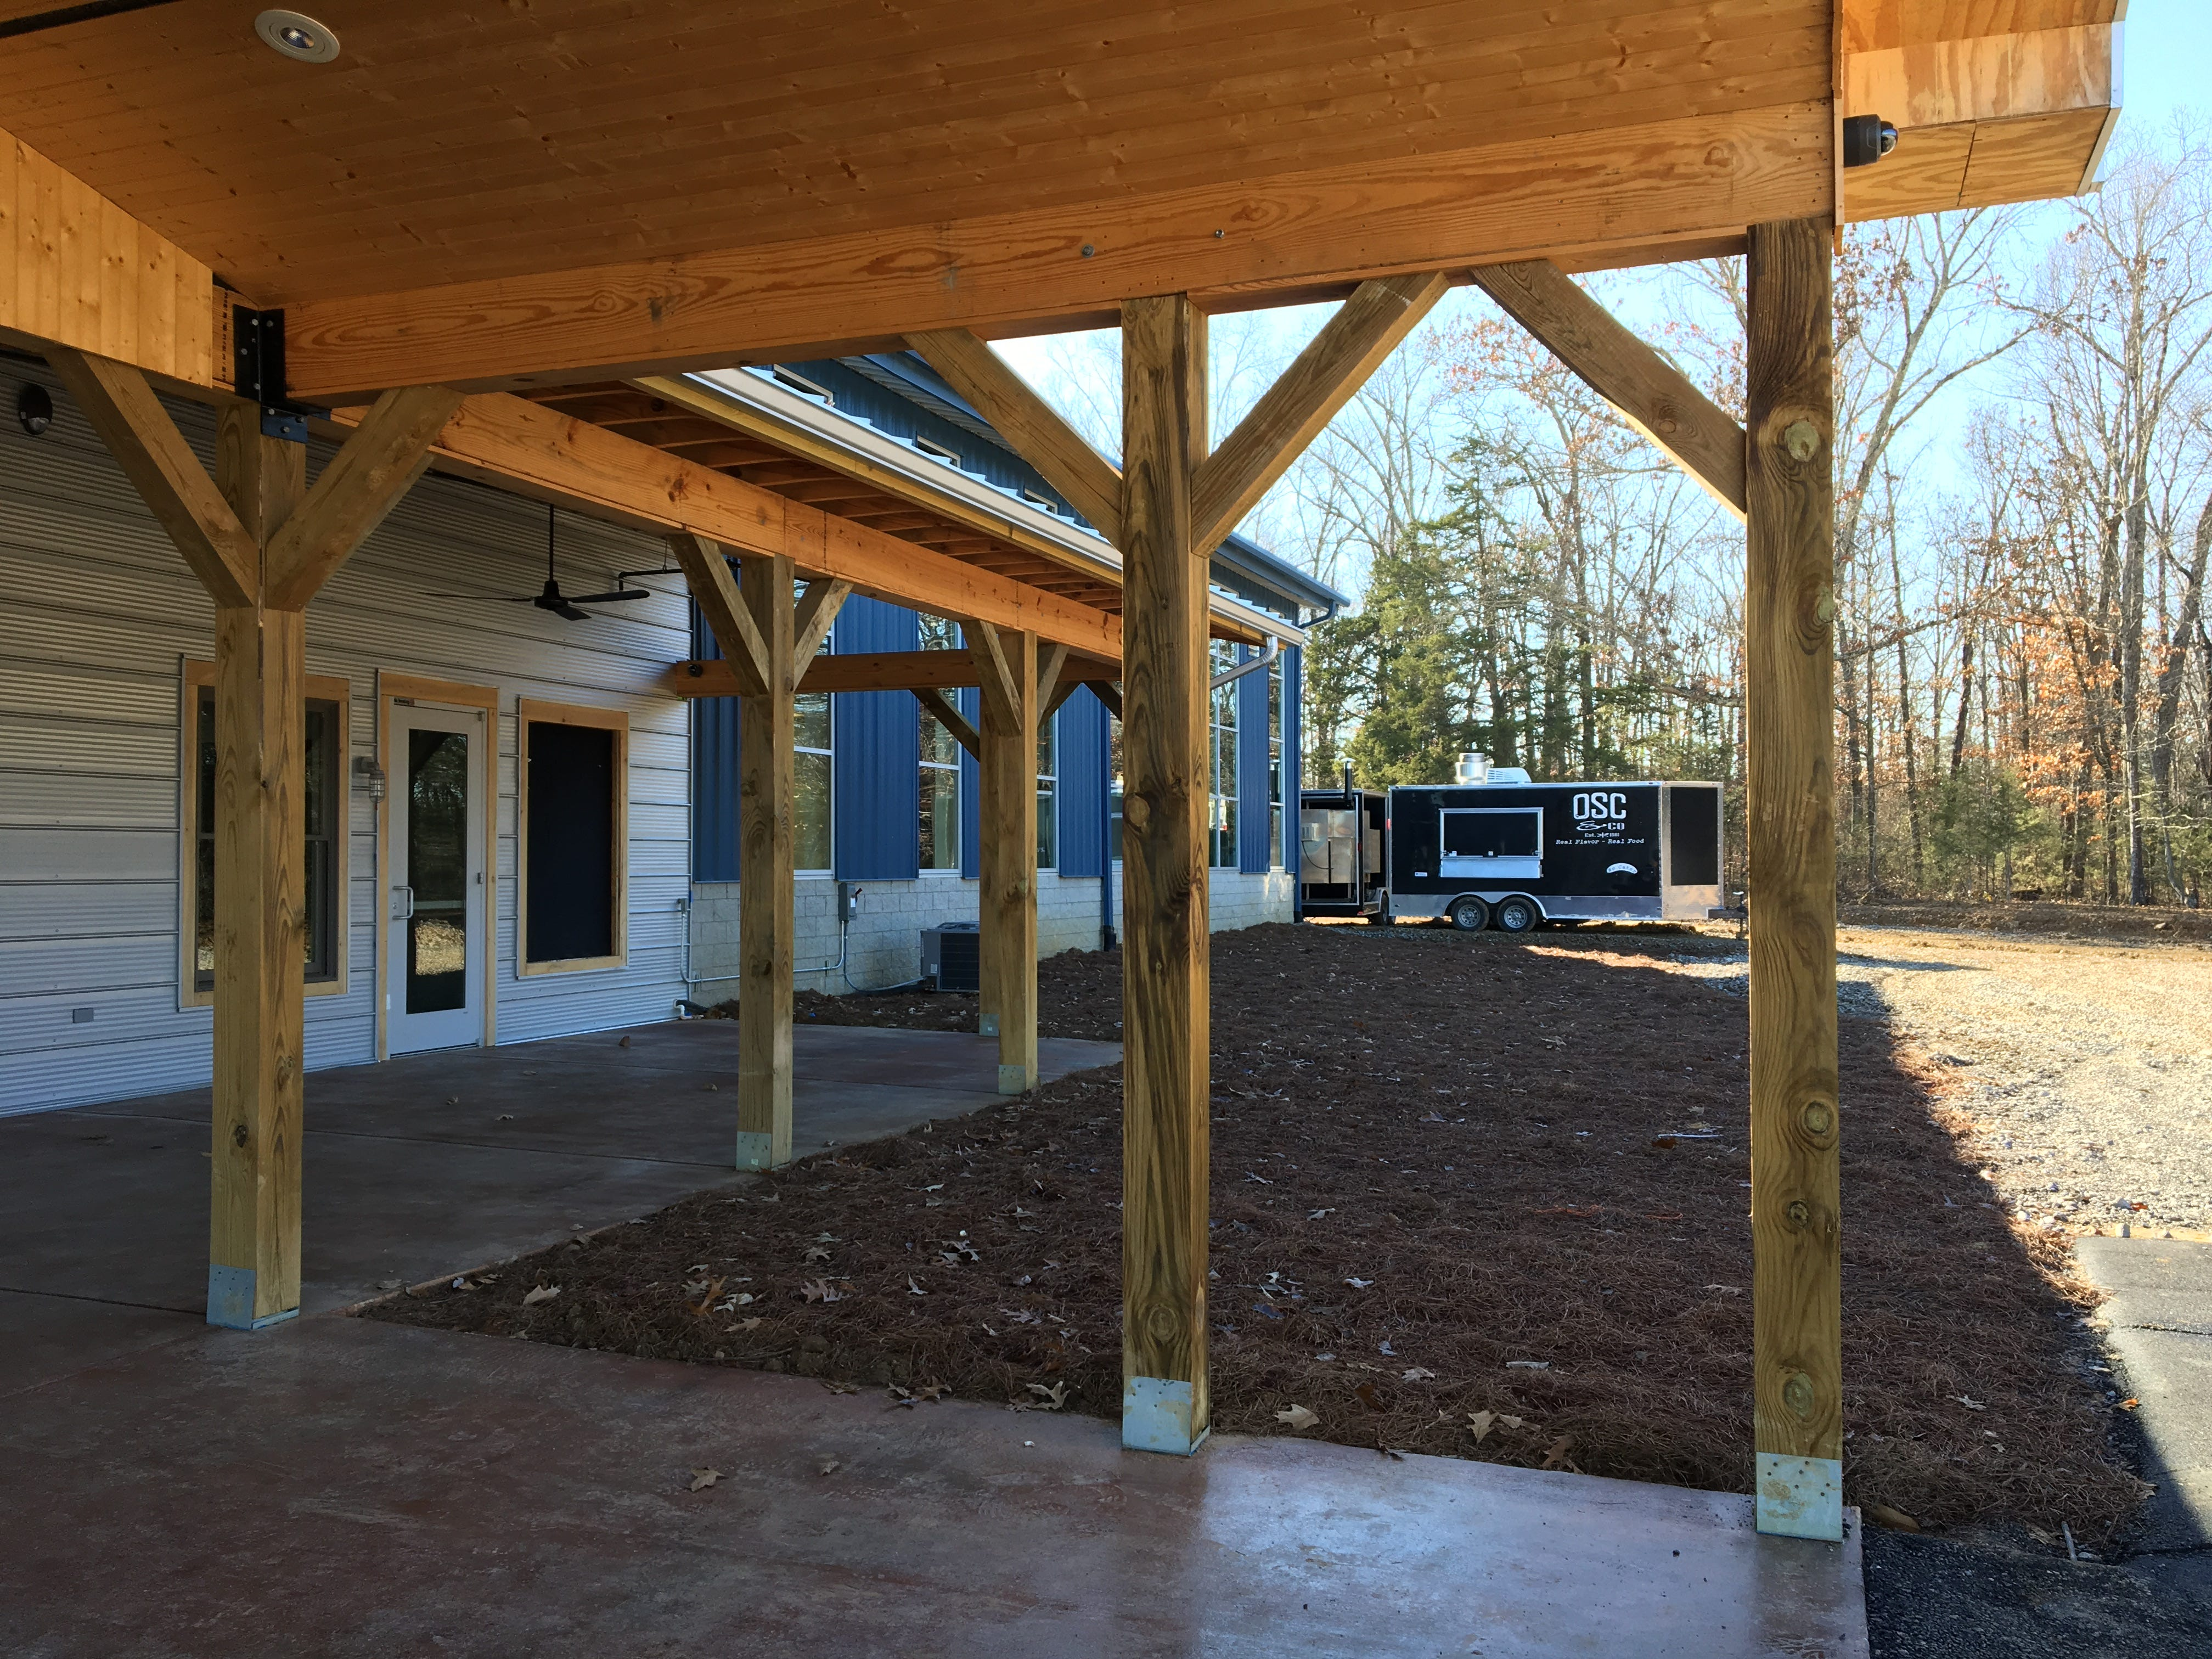 Along with the taproom at Hop Springs, there will be food trucks on site with culinary influences from Food Network star and business investor Maneet Chauhan of Nashville.